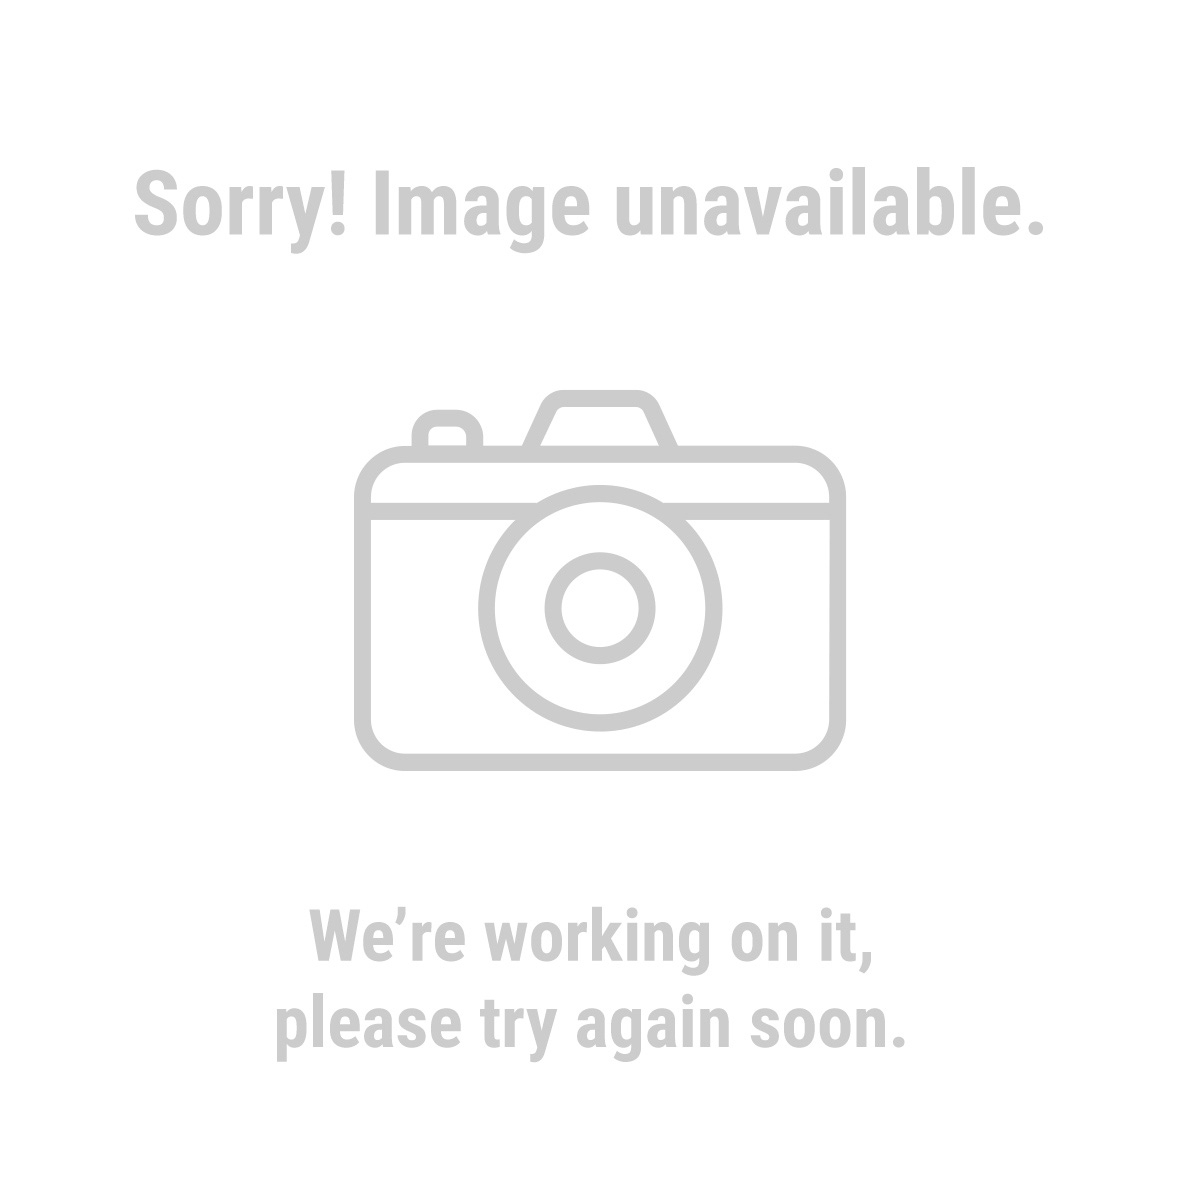 Battery Jumper Cables : Ft gauge heavy duty booster cables with inline